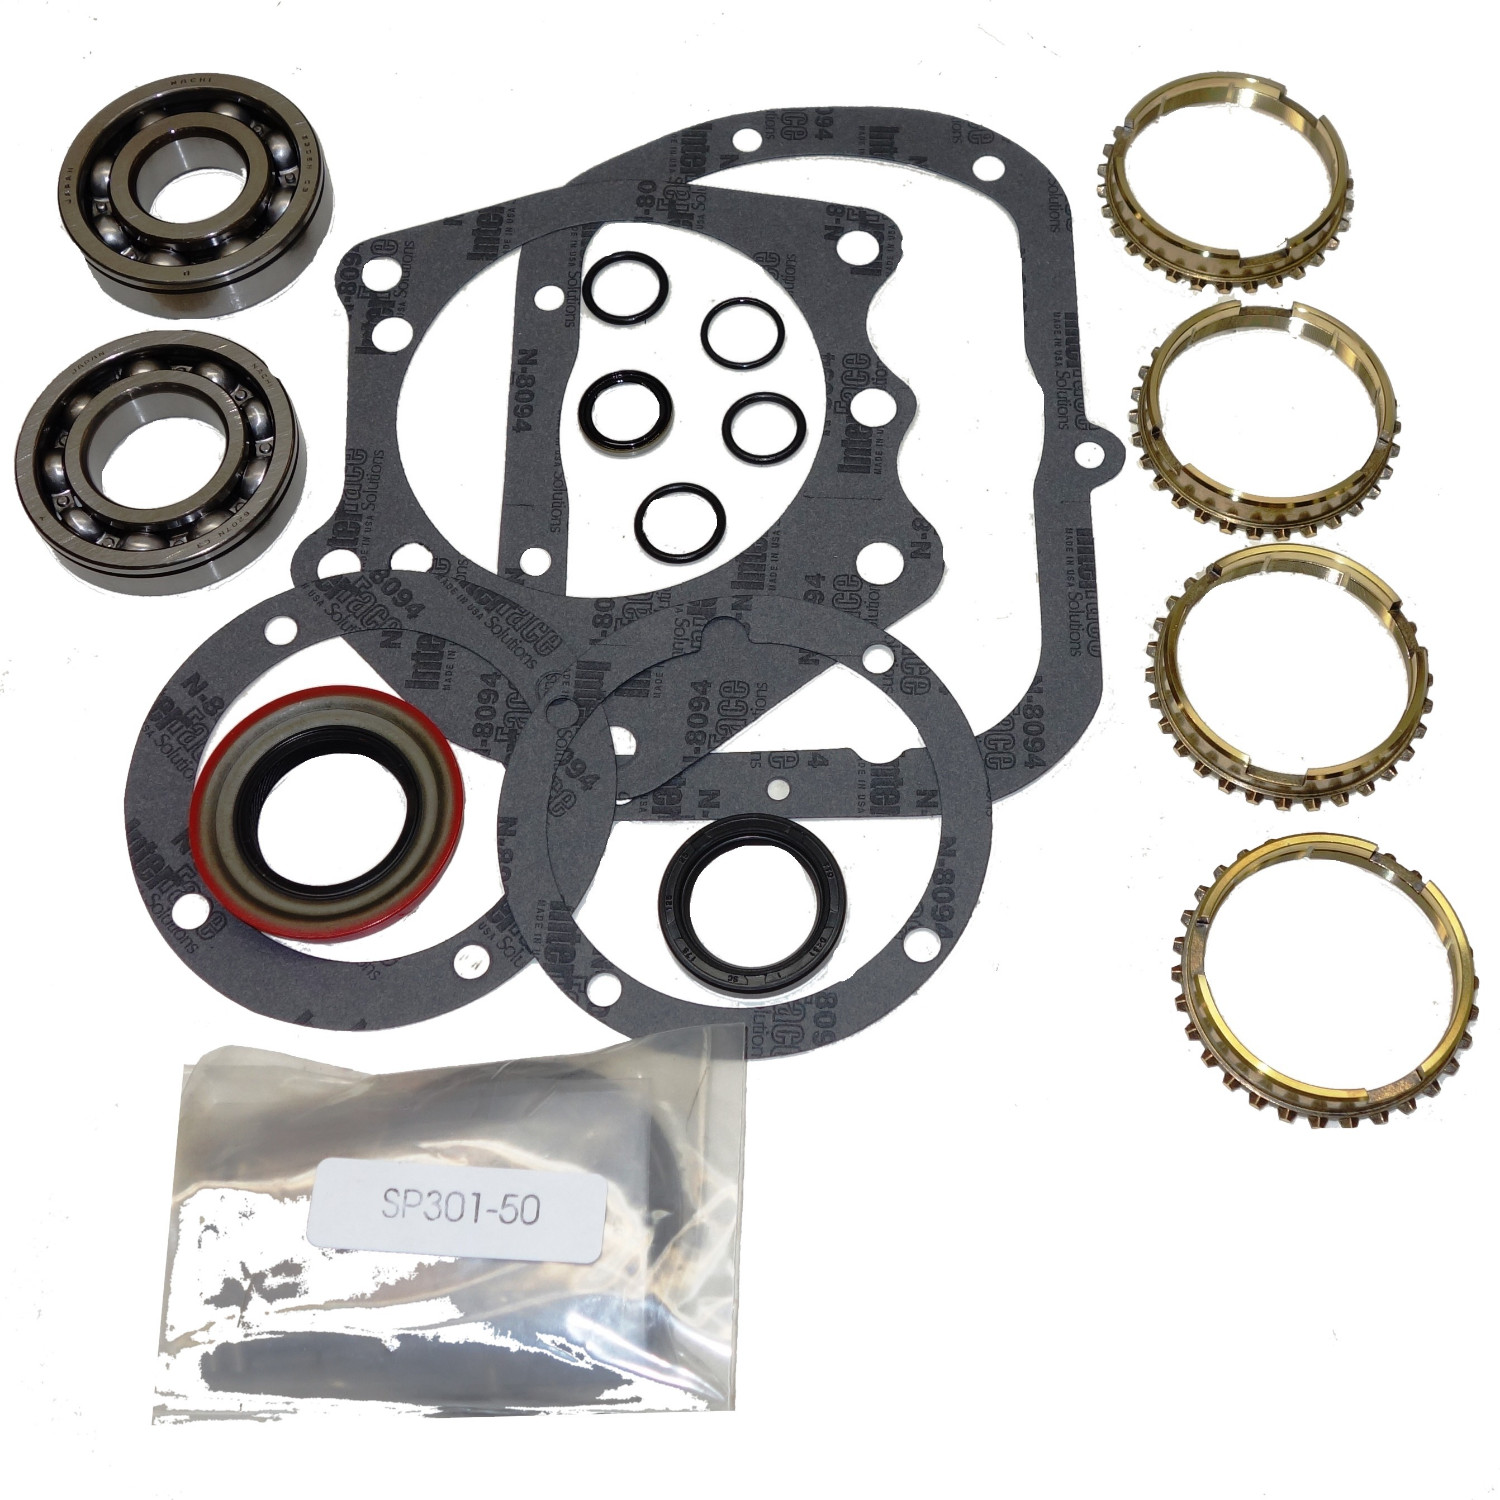 Manual Transmission Rebuild Kits, Page 4